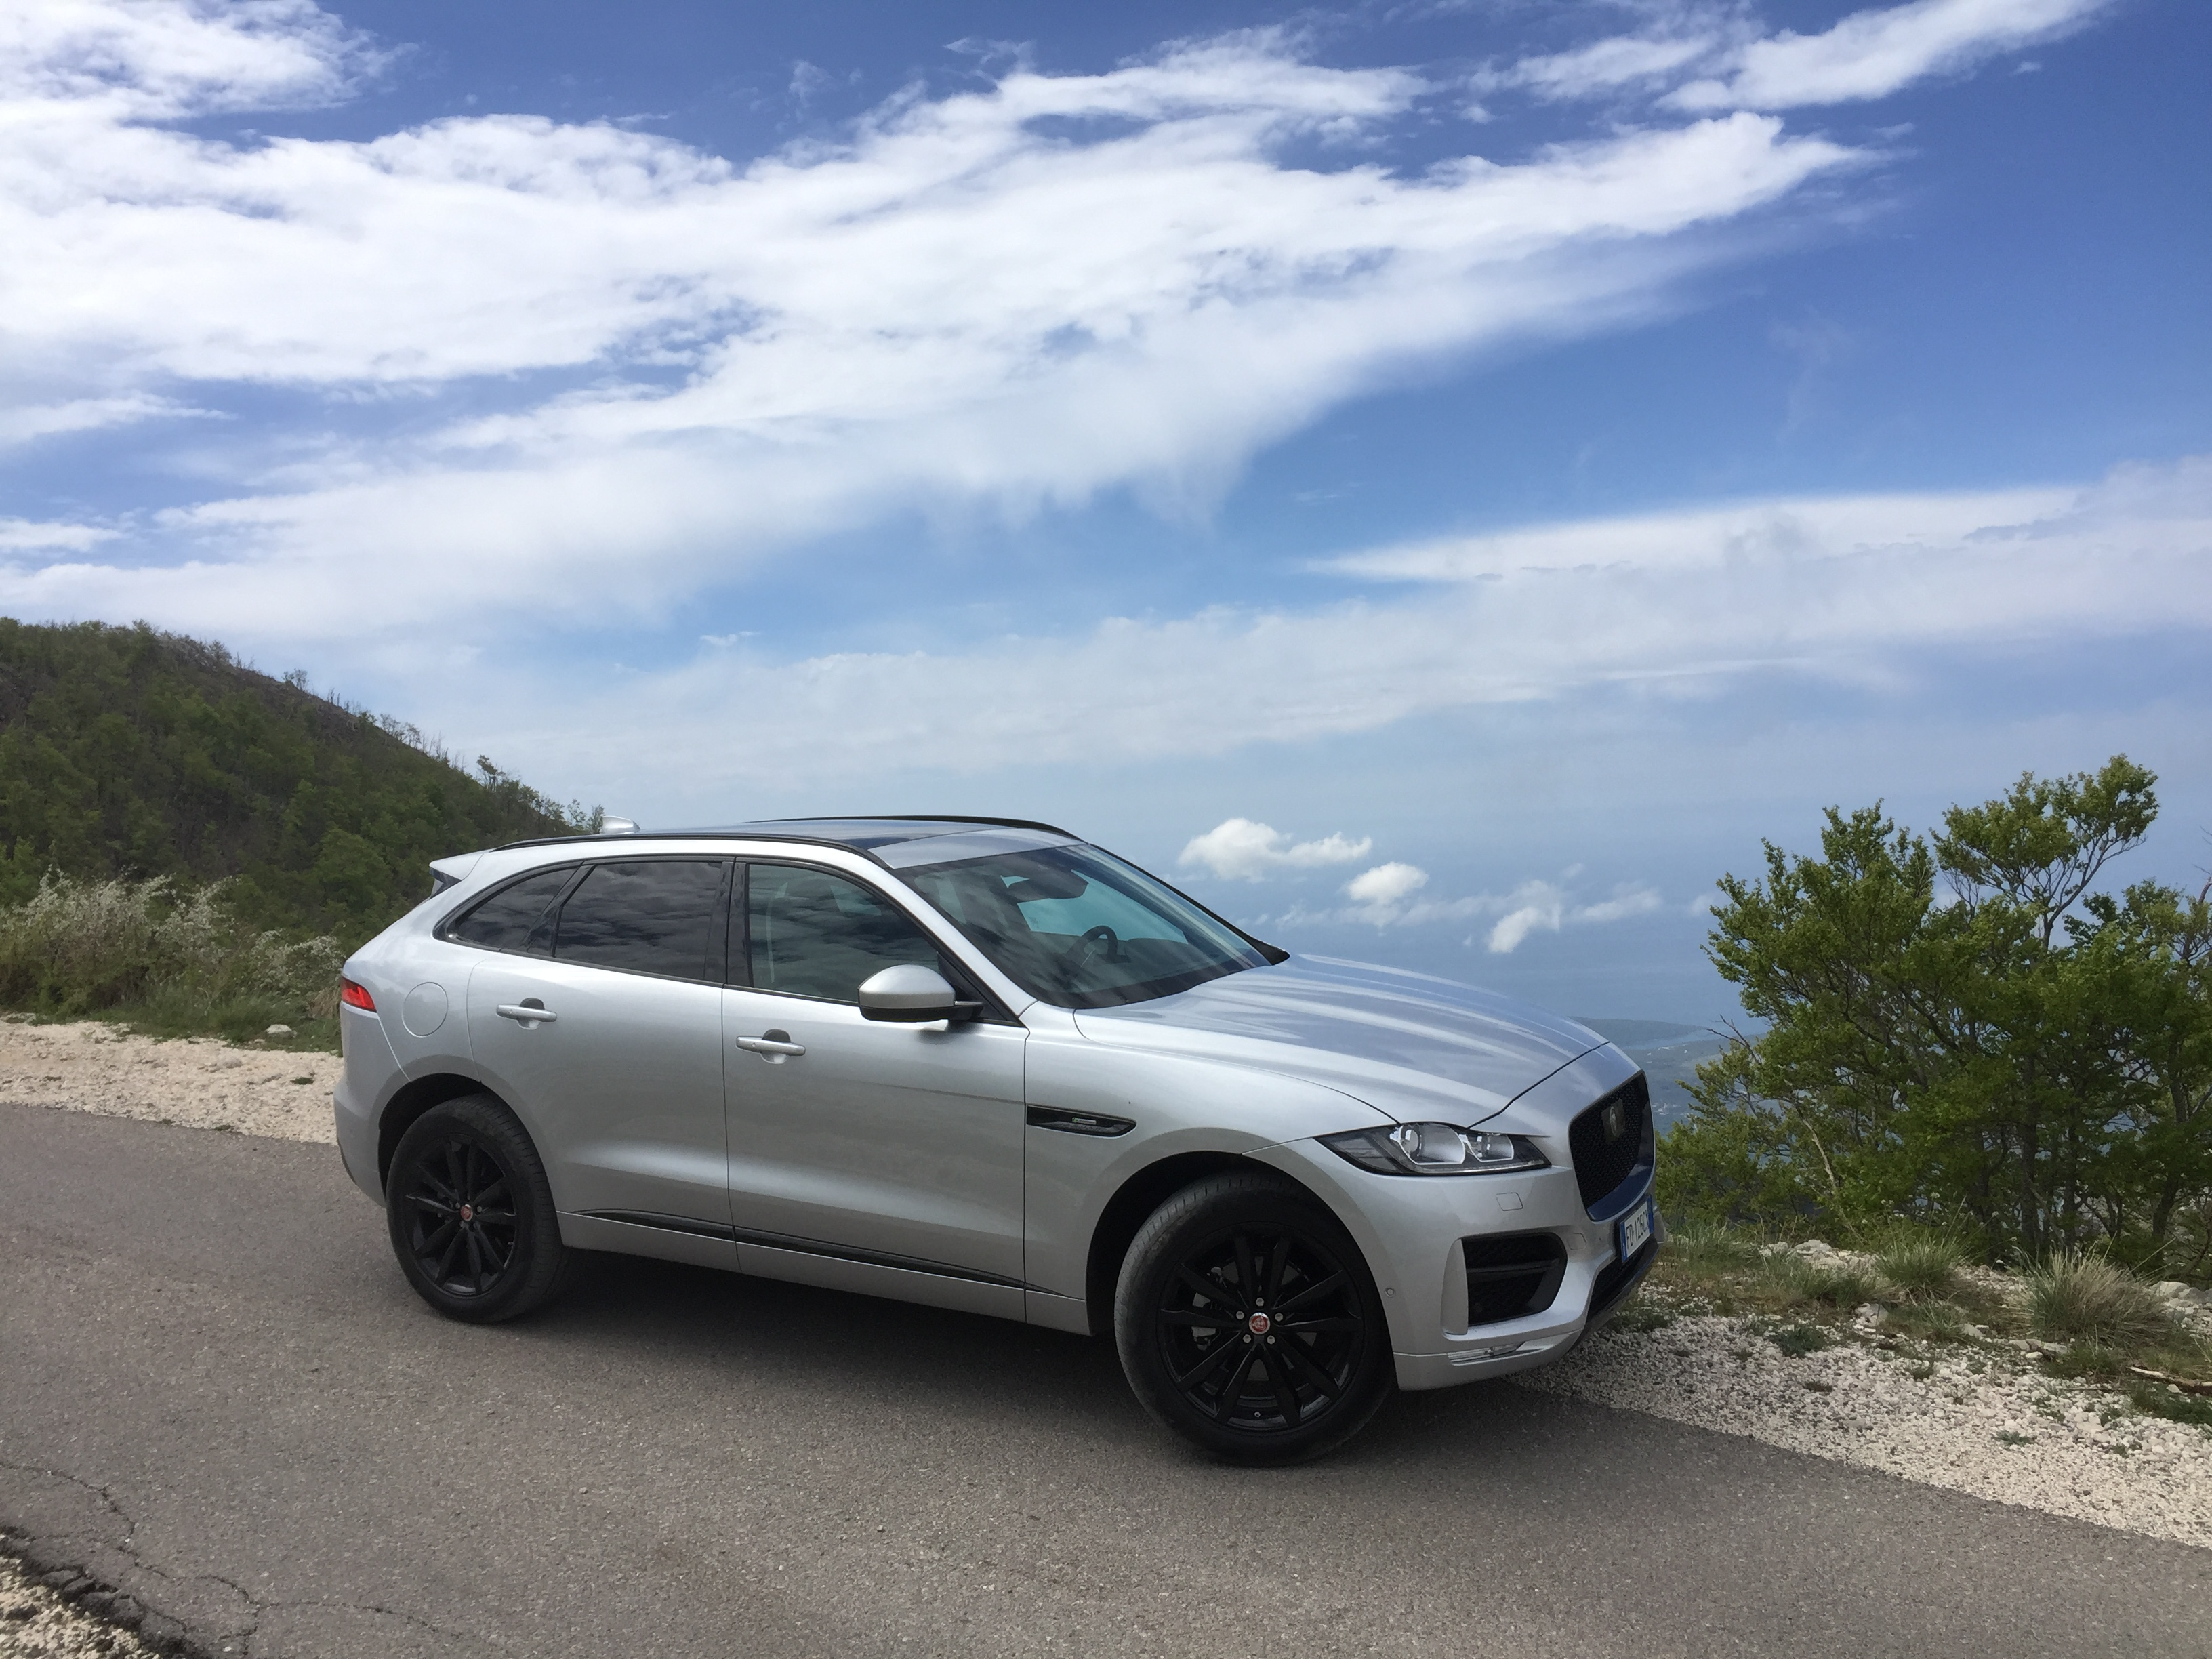 2017 Jaguar F Pace Prestige >> 2017 Jaguar F-Pace R-Sport - Stewart's Automotive Group